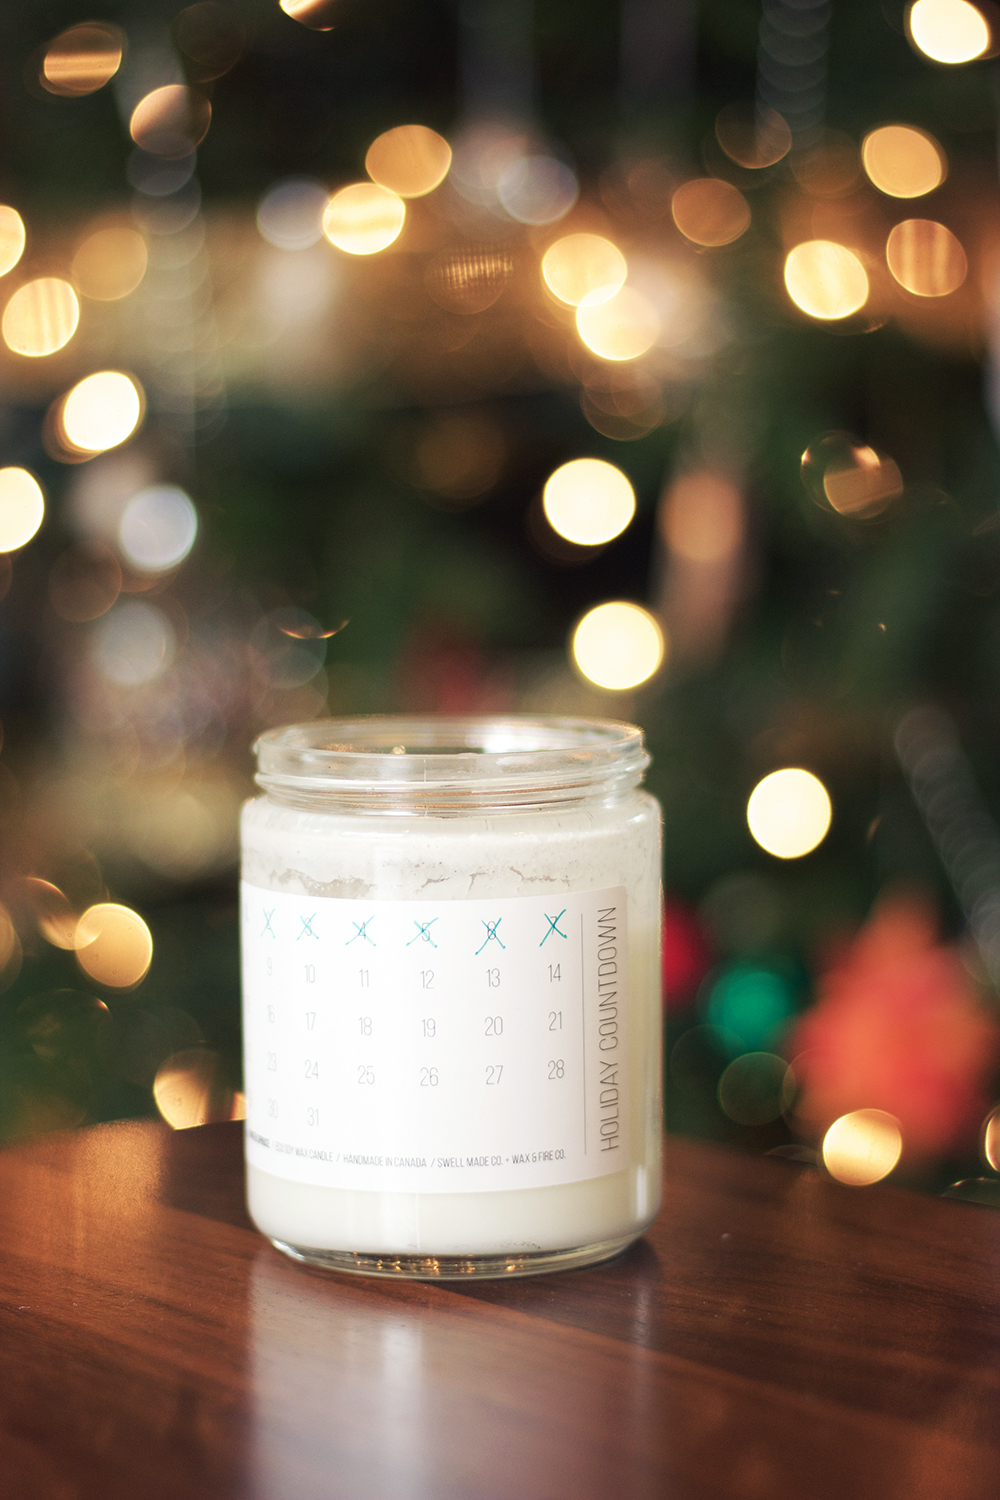 I've been burning this advent candle from Swell Made Co since the 1st of the month and am loving the ritual. The scent is perfection (we have a real Christmas tree, but this just ups the scent factor by a bit) and crossing off the days makes me feel like a kid again!